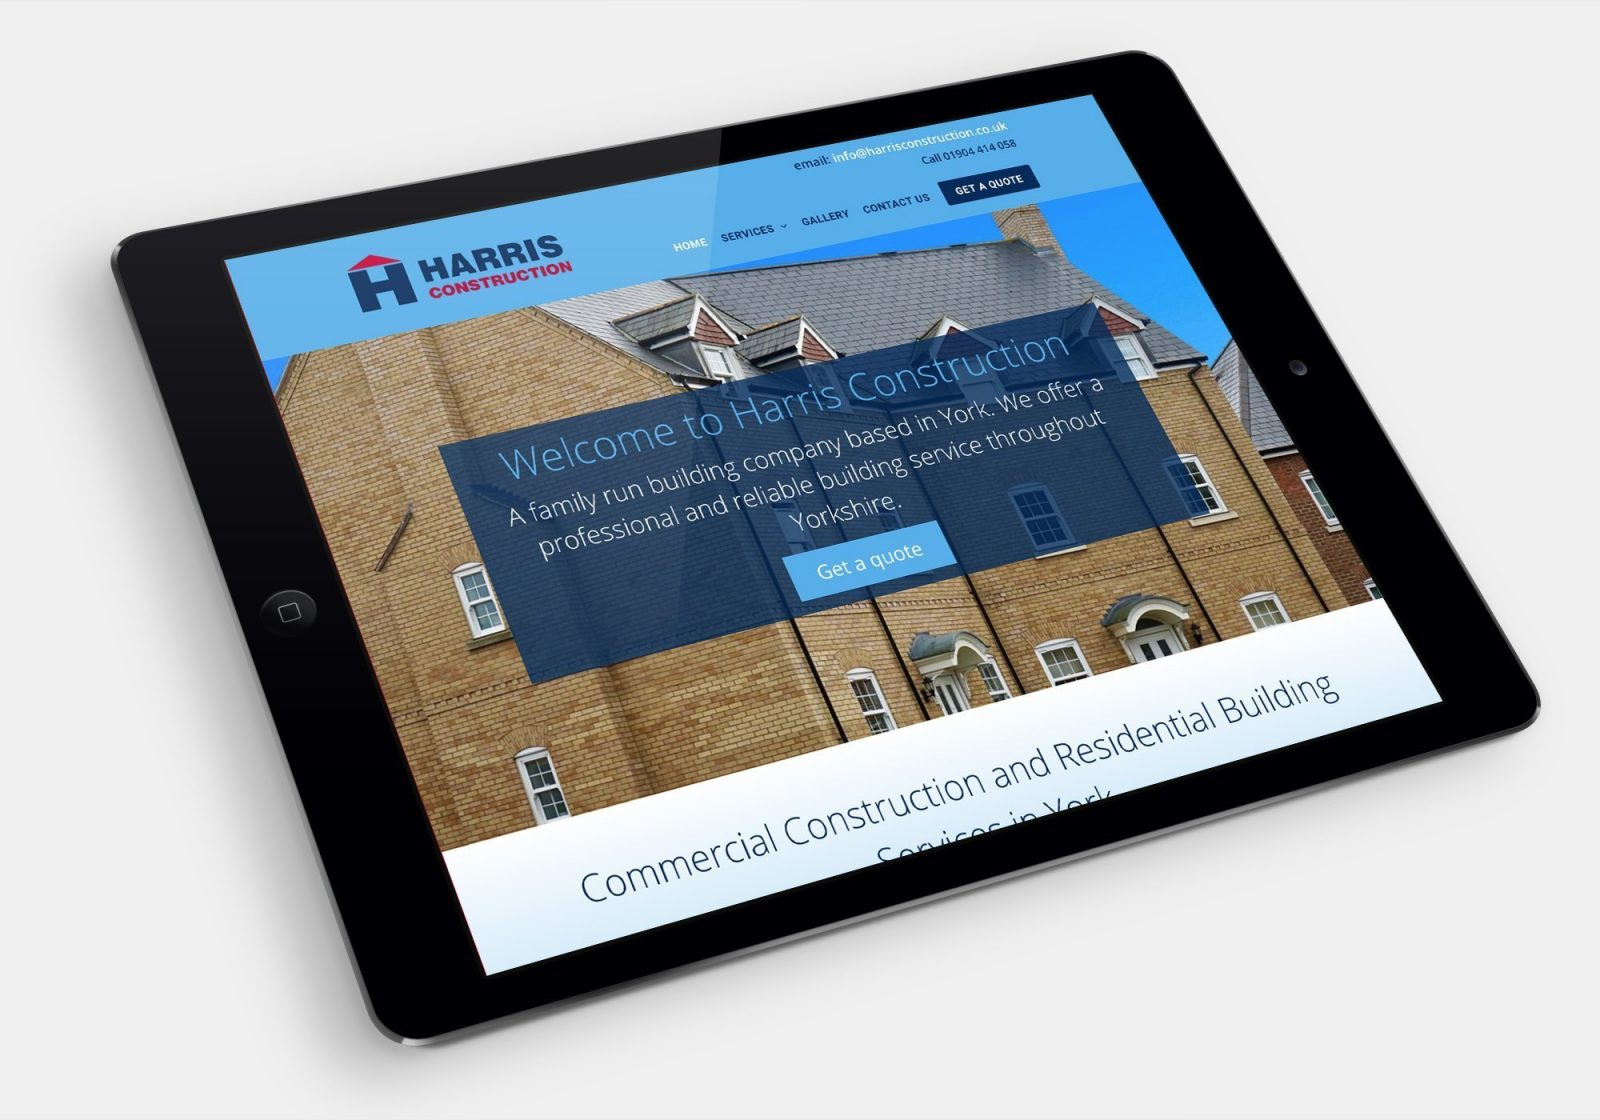 Harris Construction website shown on an ipad